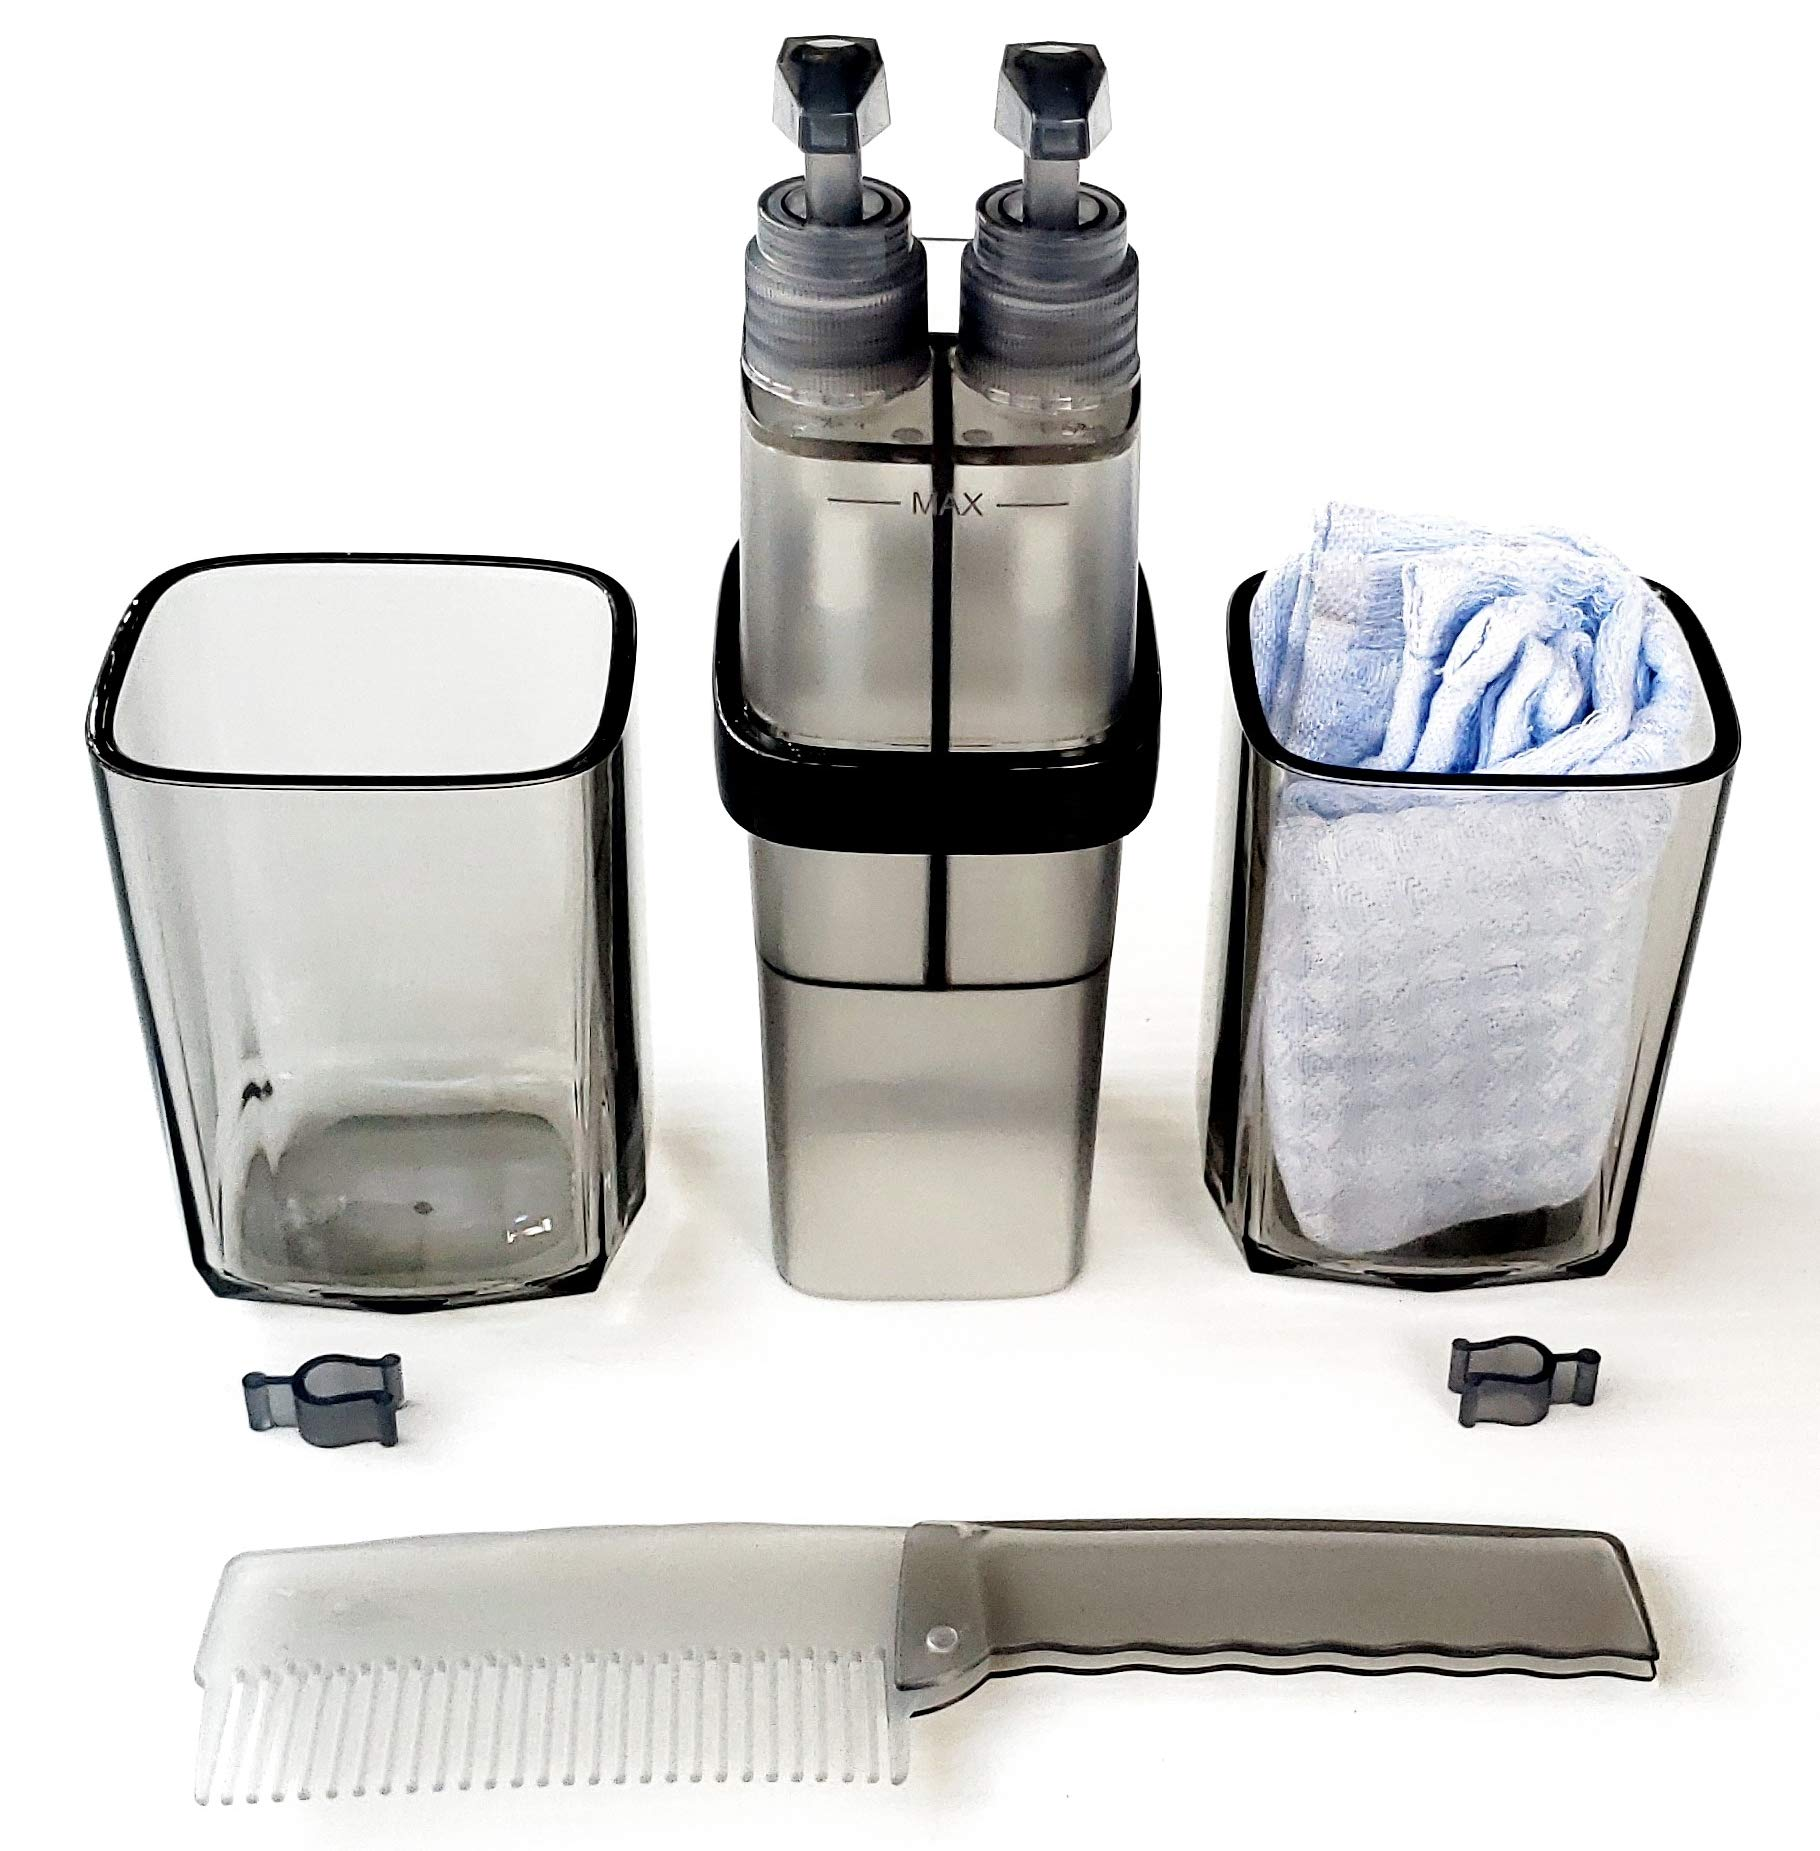 Toothbrush Travel Case BPA Free. Toothbrush holder with 2 cups,1 Bamboo Fiber Face Towel,1 Foldable Comb,1 soap holder pump and 1 lotion holder pump. For Dorm, Home,Travel, Family Vacation and Camping by Liv Free